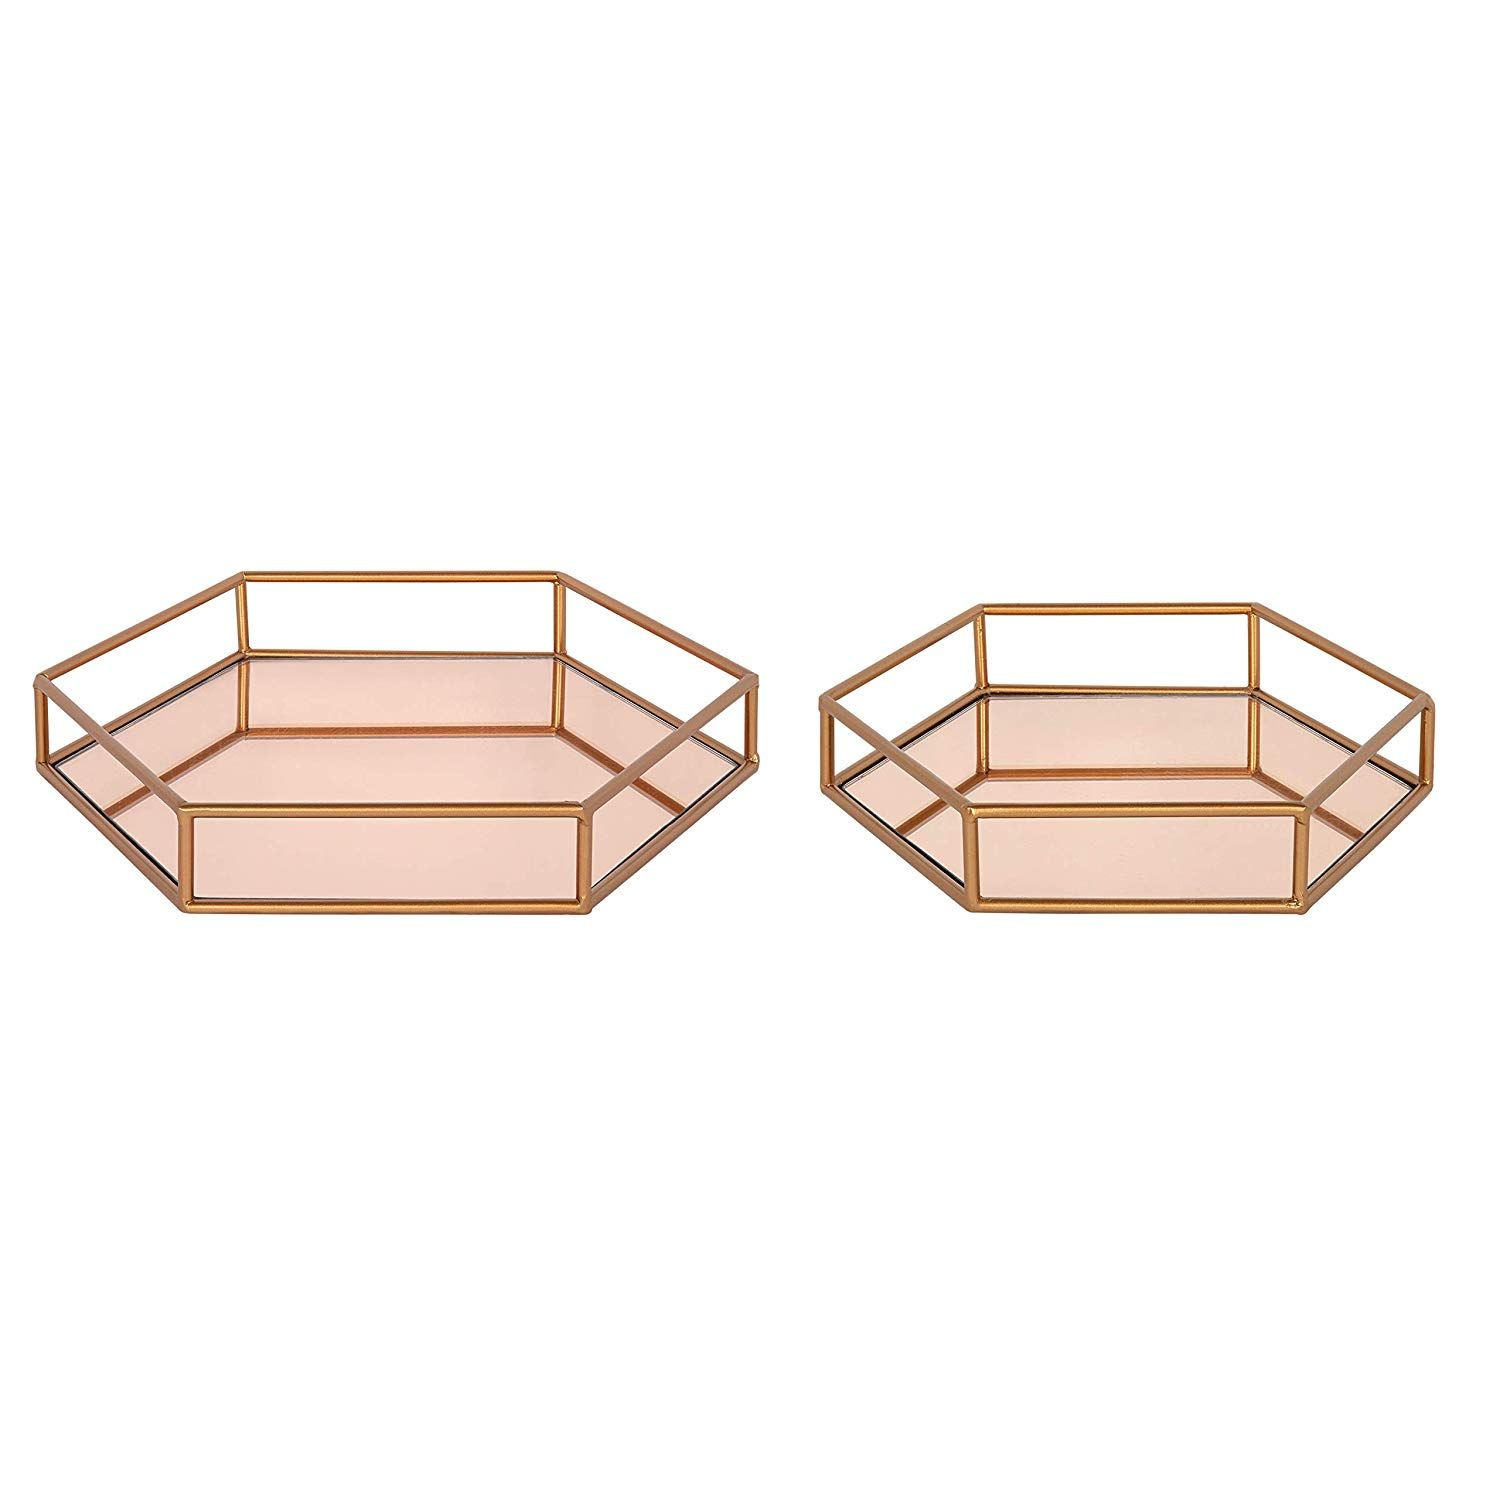 Amazon Com Kate And Laurel Felicia Nesting Metal Mirrored Decorative Trays 2 Piece Rose Gold Home Kitchen Metal Mirror Tray Decor Decorative Tray